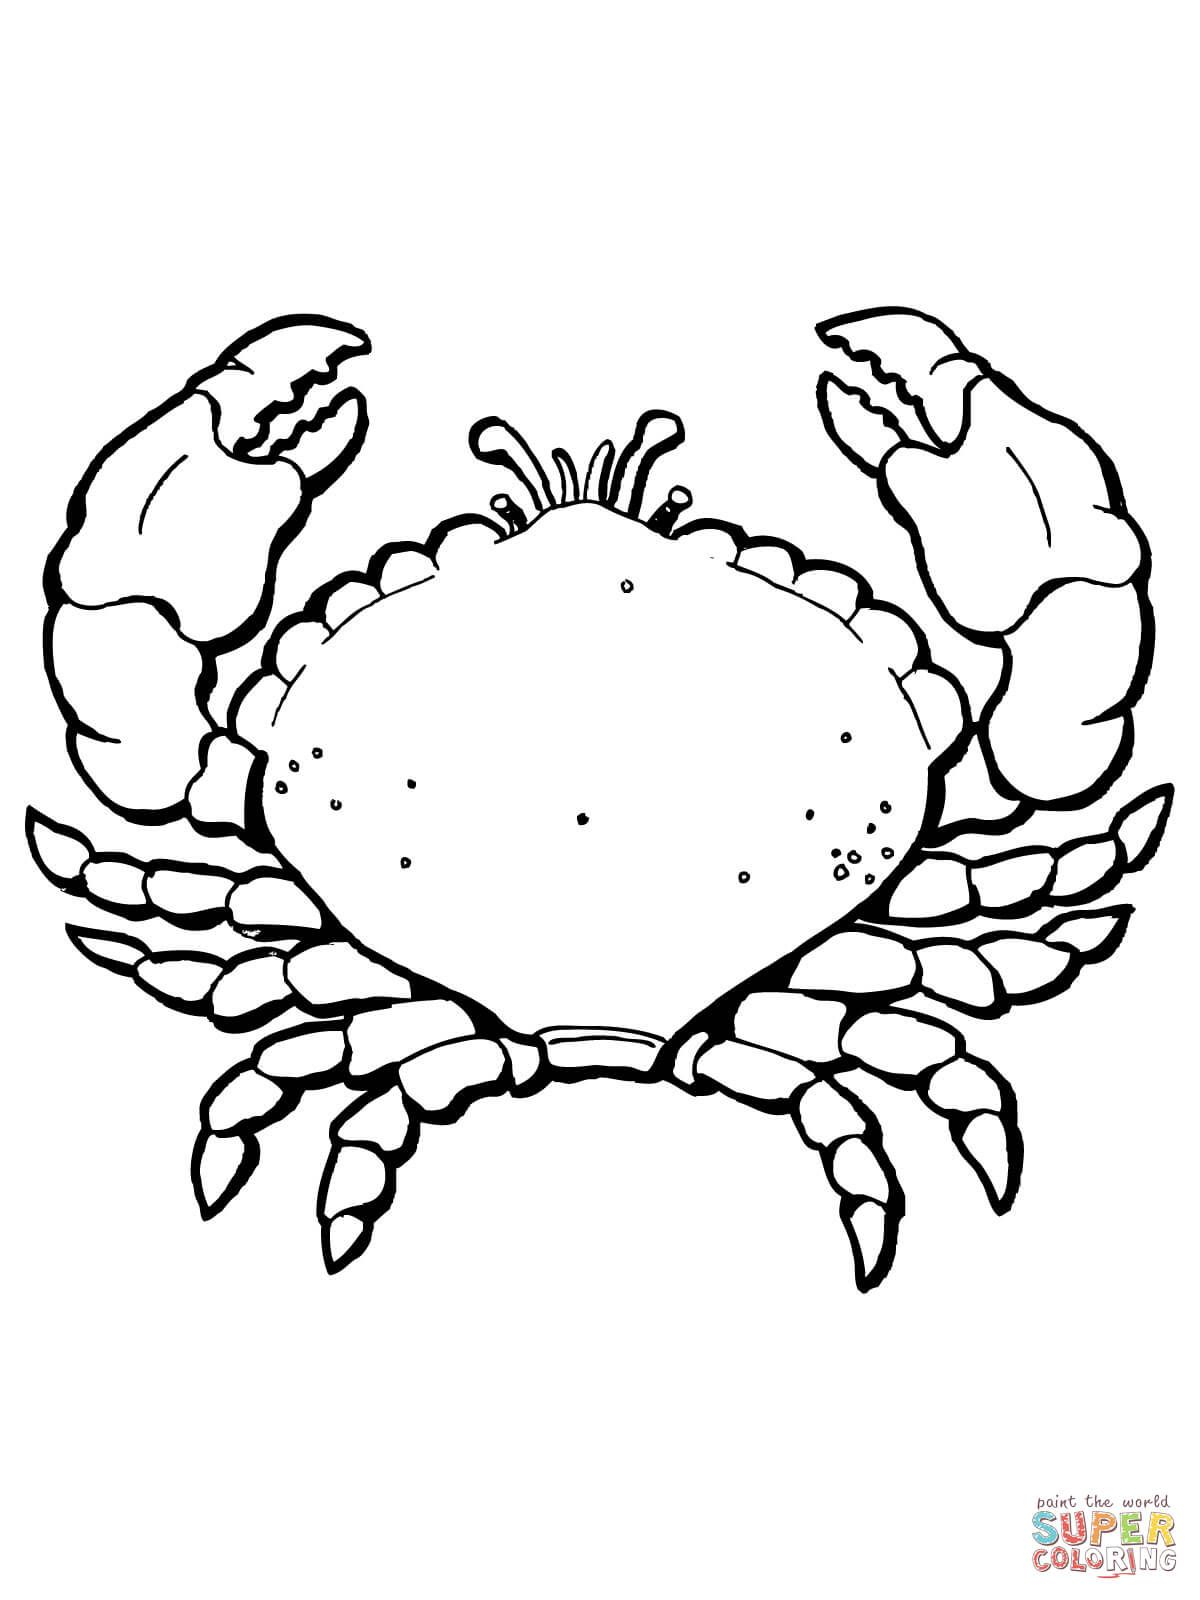 Coloring Crab With Big Claws Coloring Page Free Printable Pages